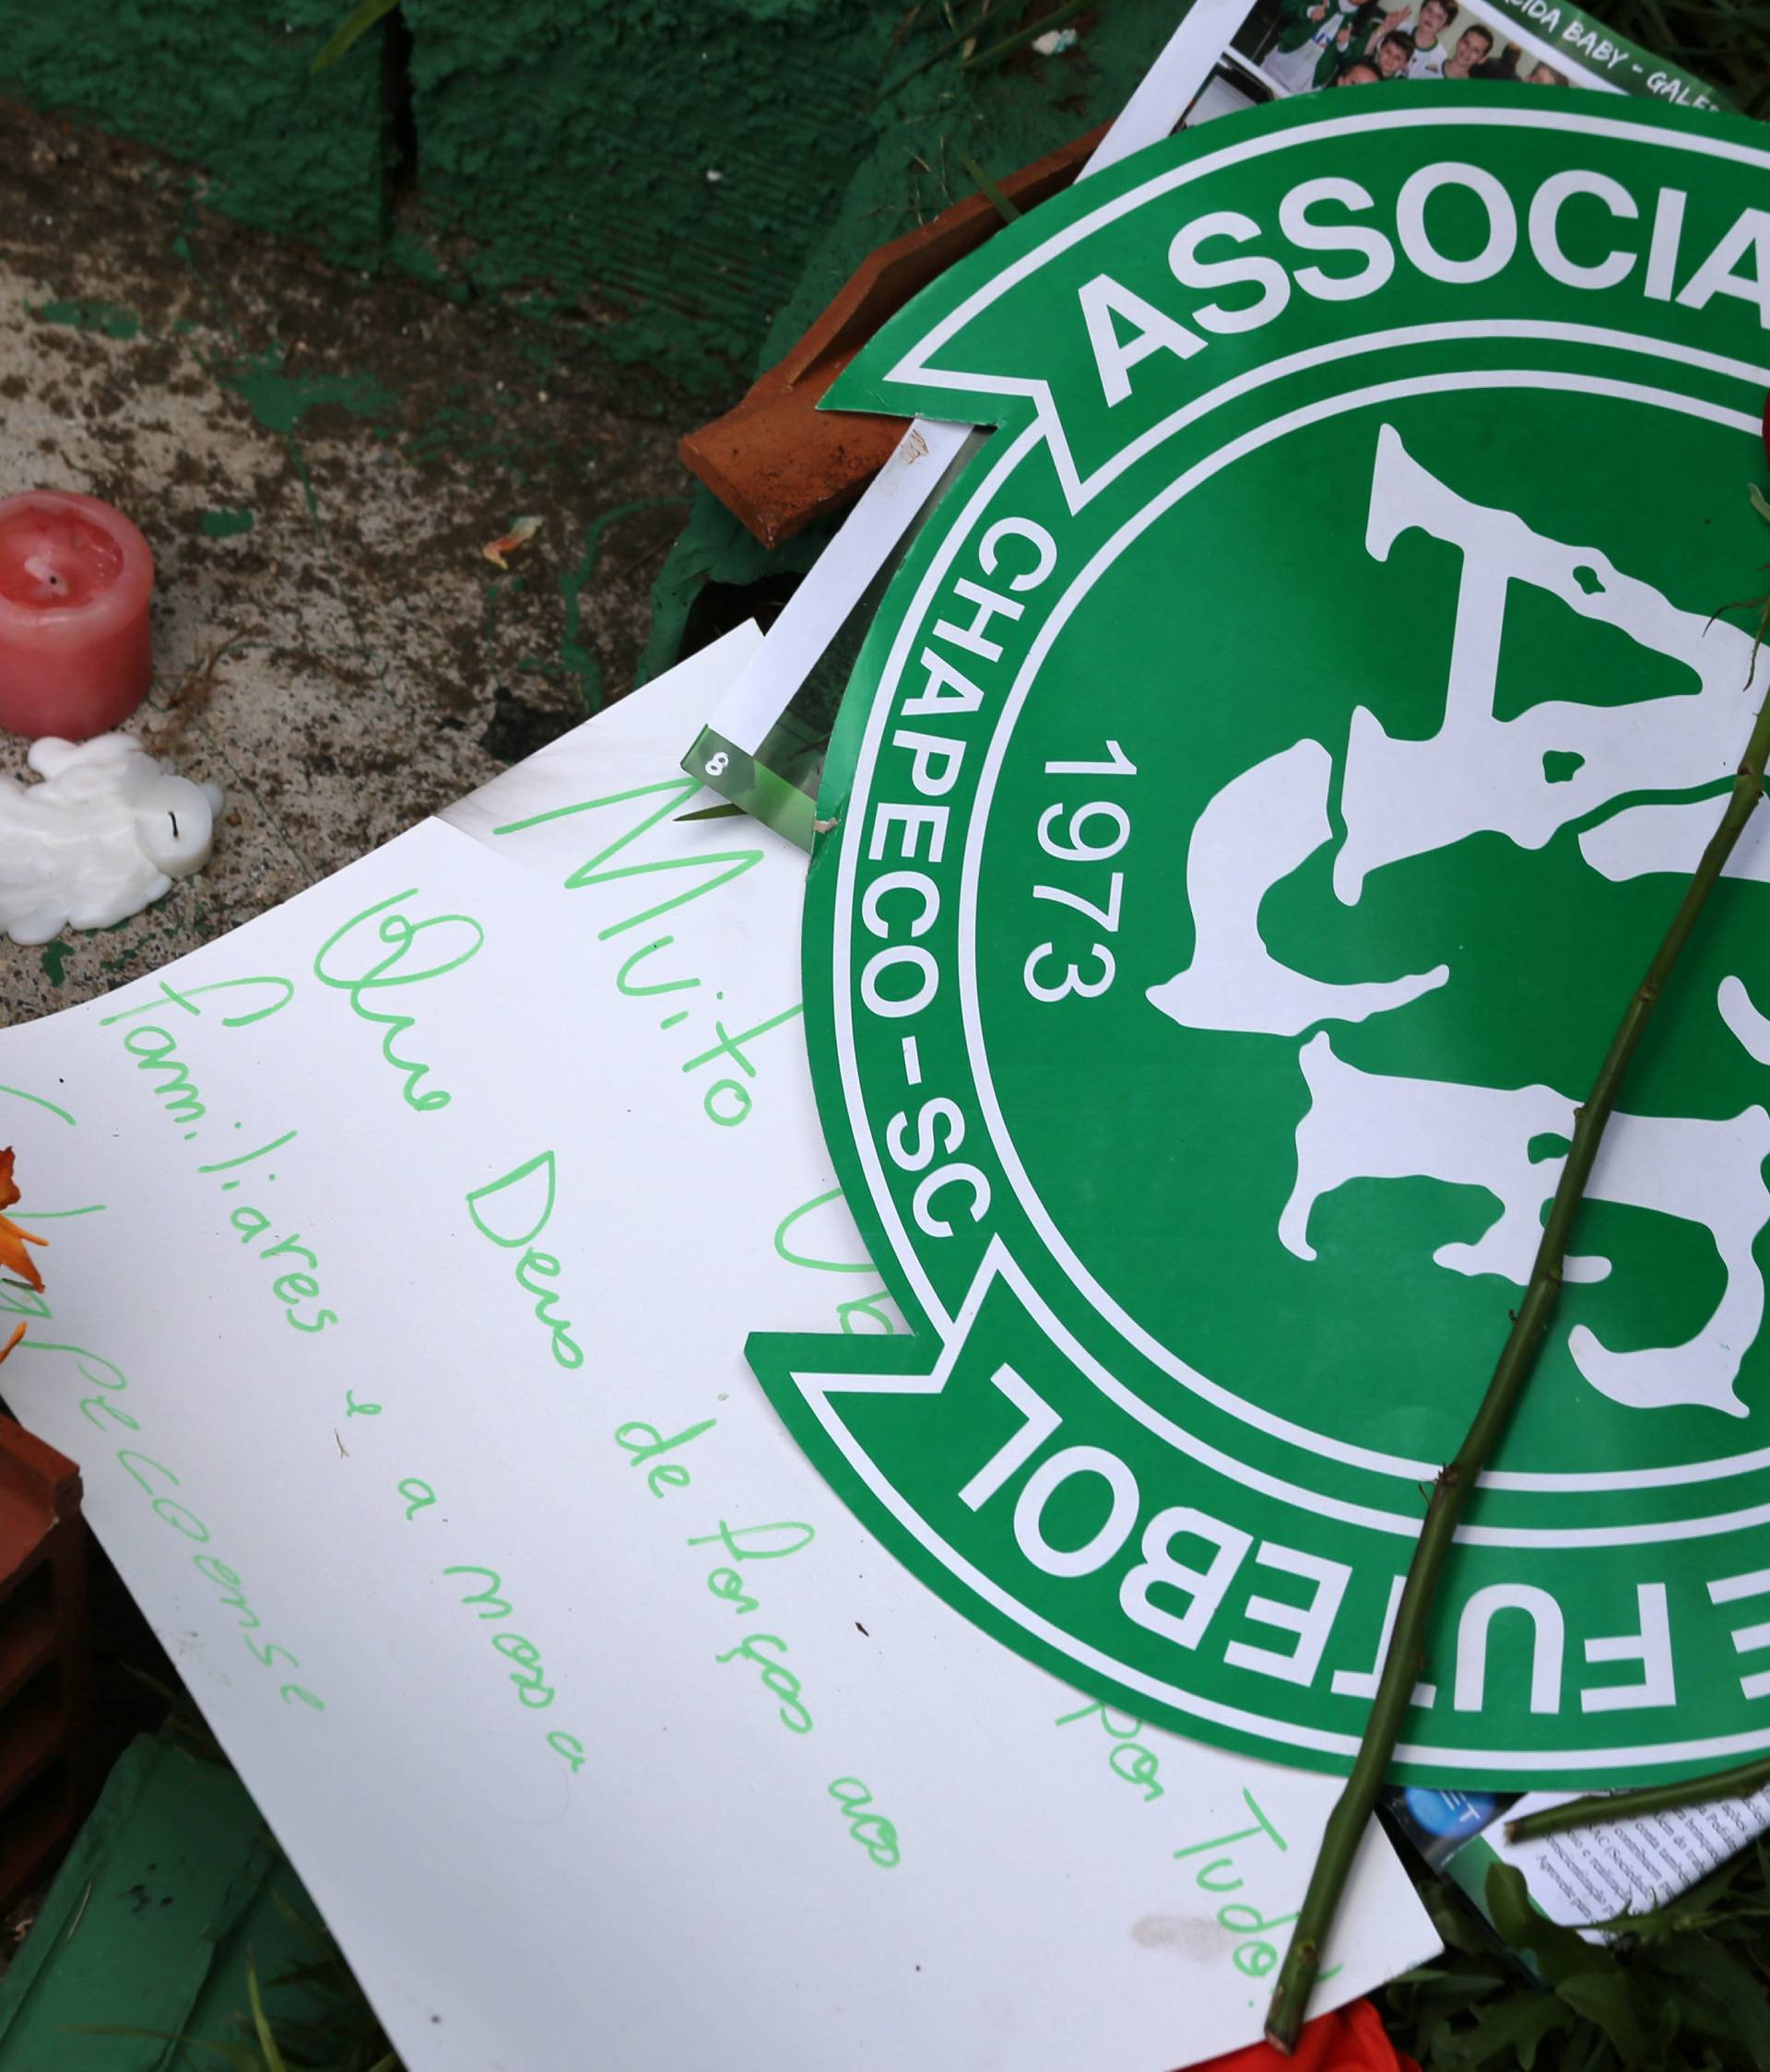 Flowers and messages are seen next a Chapecoense soccer team flag in tribute to their players in front of the Arena Conda stadium in Chapeco